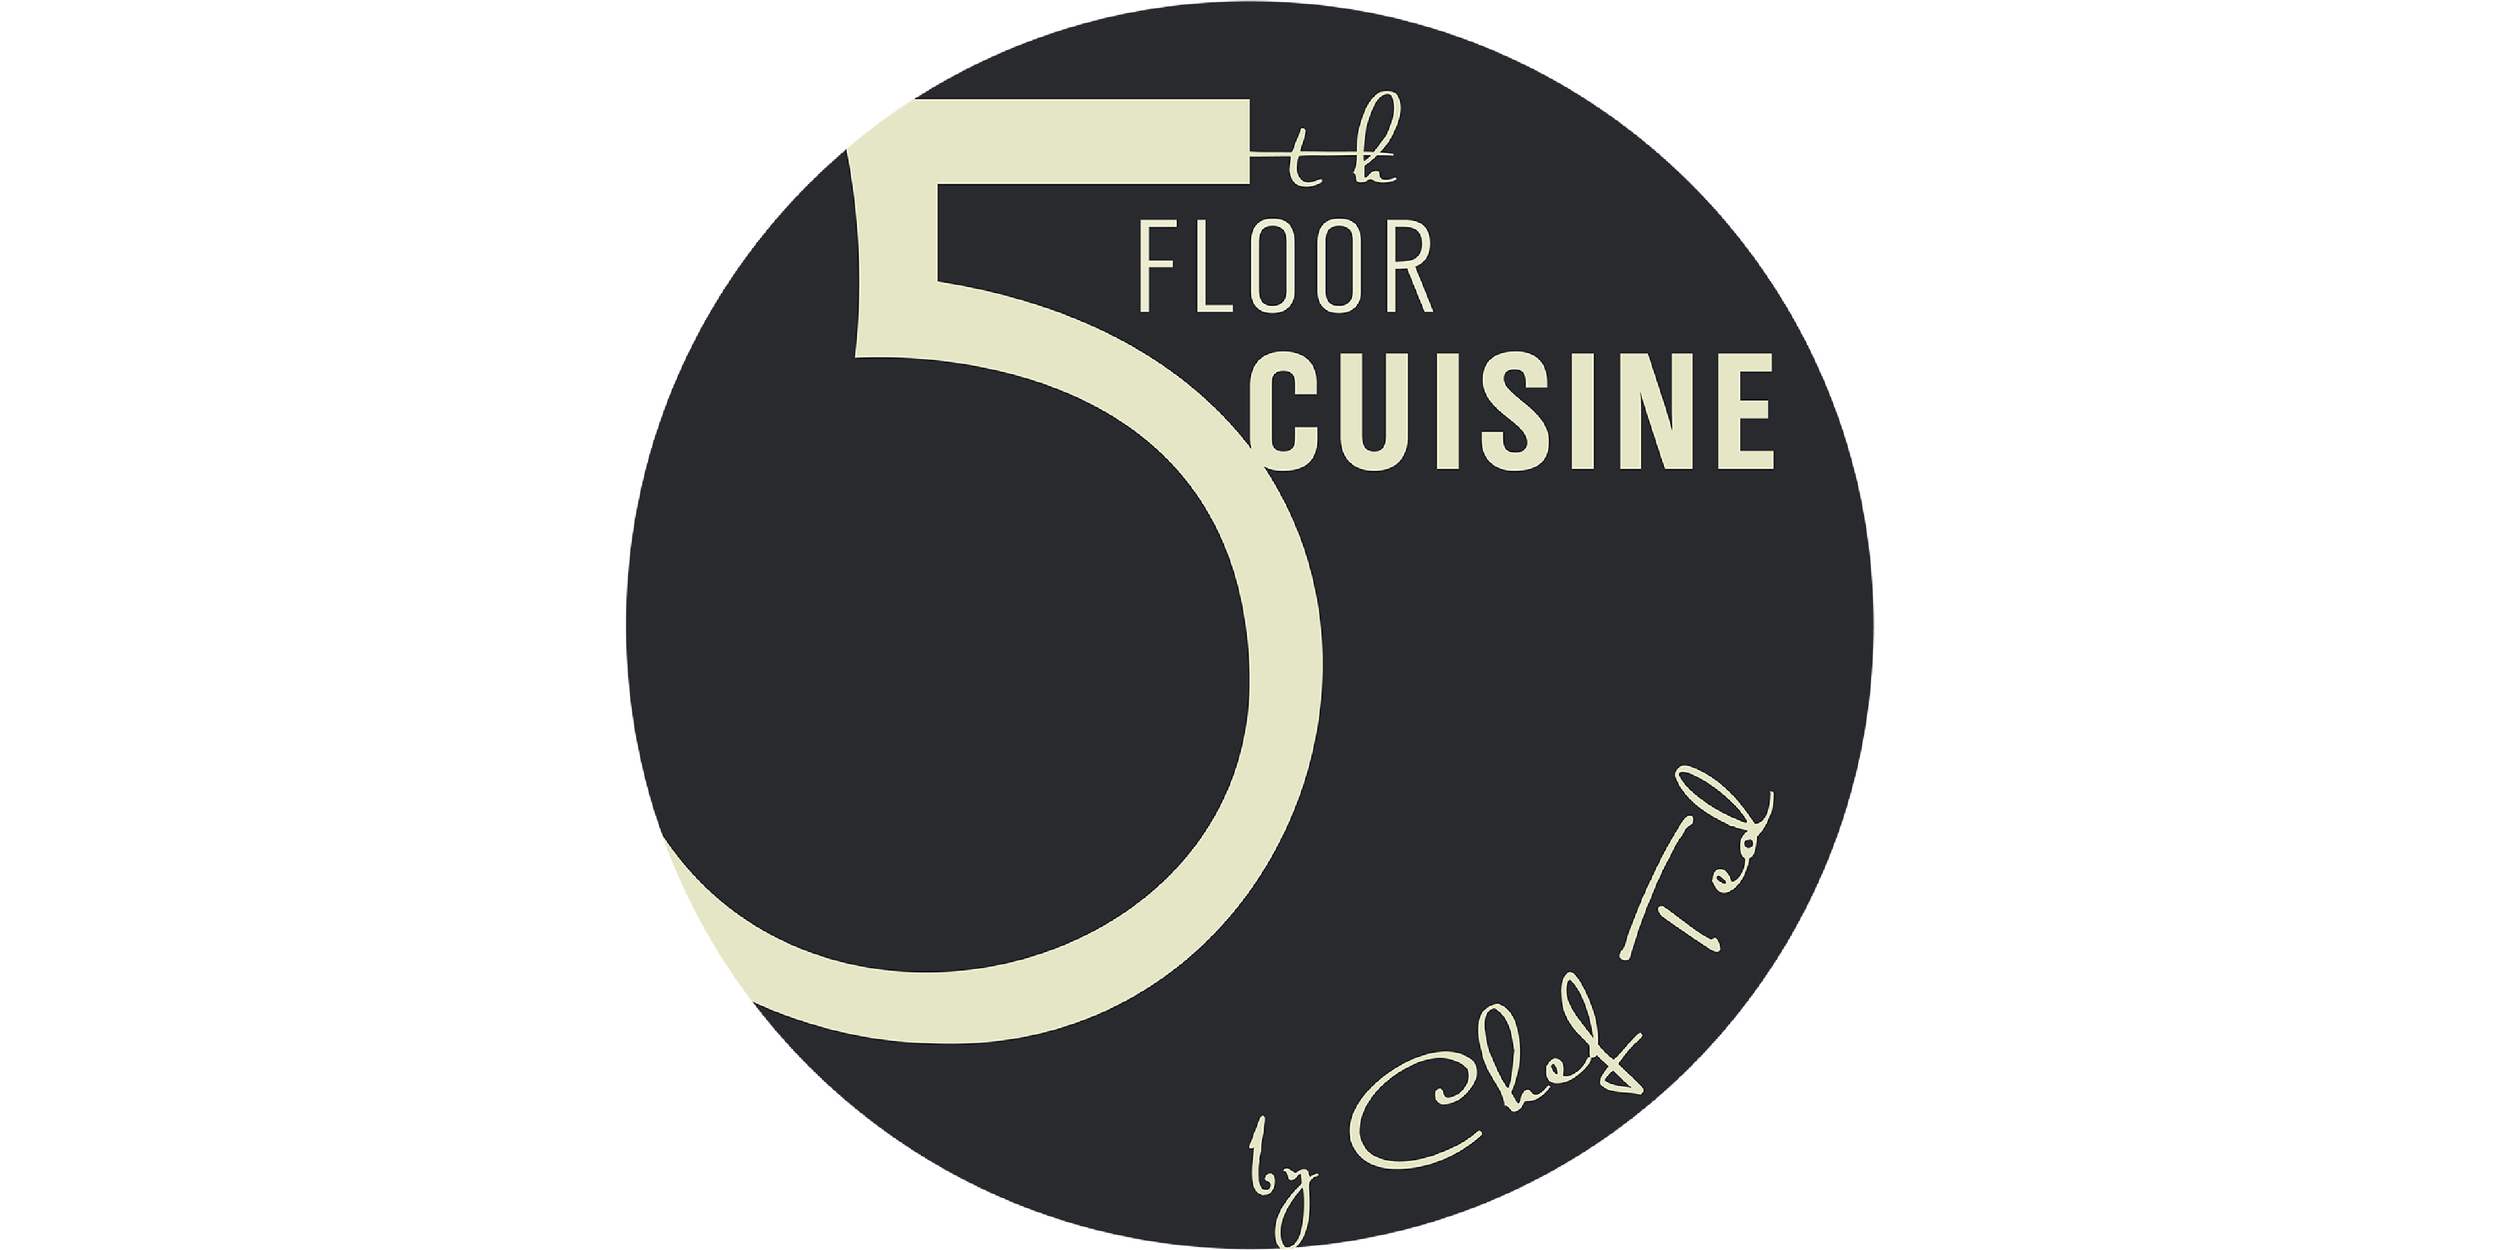 Final logo for 5th floor Cuisine branding